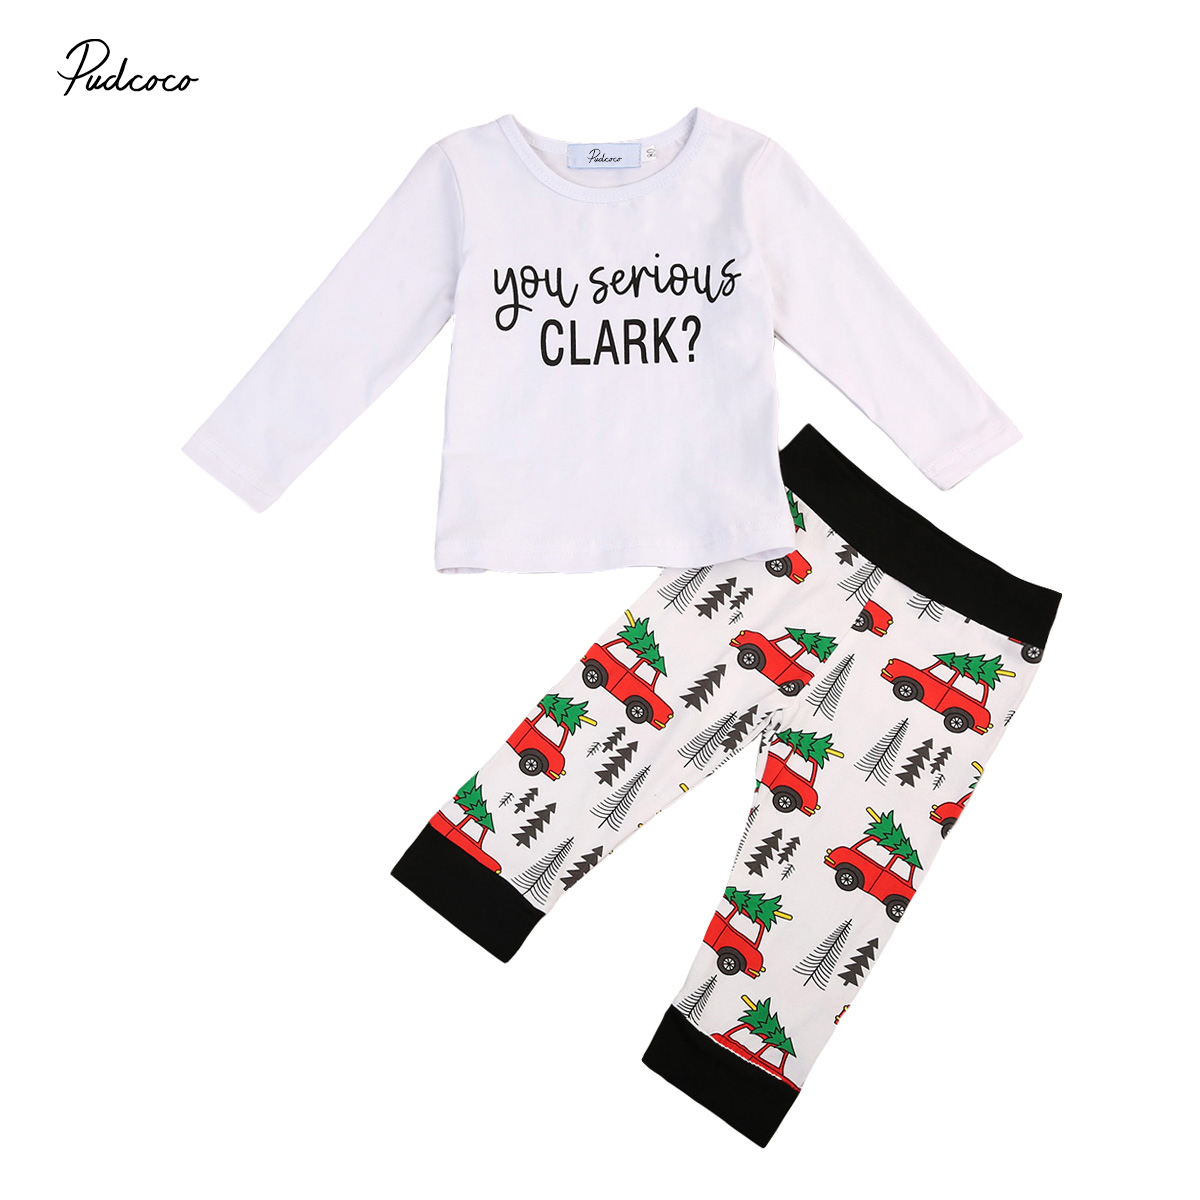 2017 Hot Newborn Baby Girls Floral Long Sleeves Romper Car Tree Pants Outfit You Are Serious Set Casual Spring Autumn Clothes